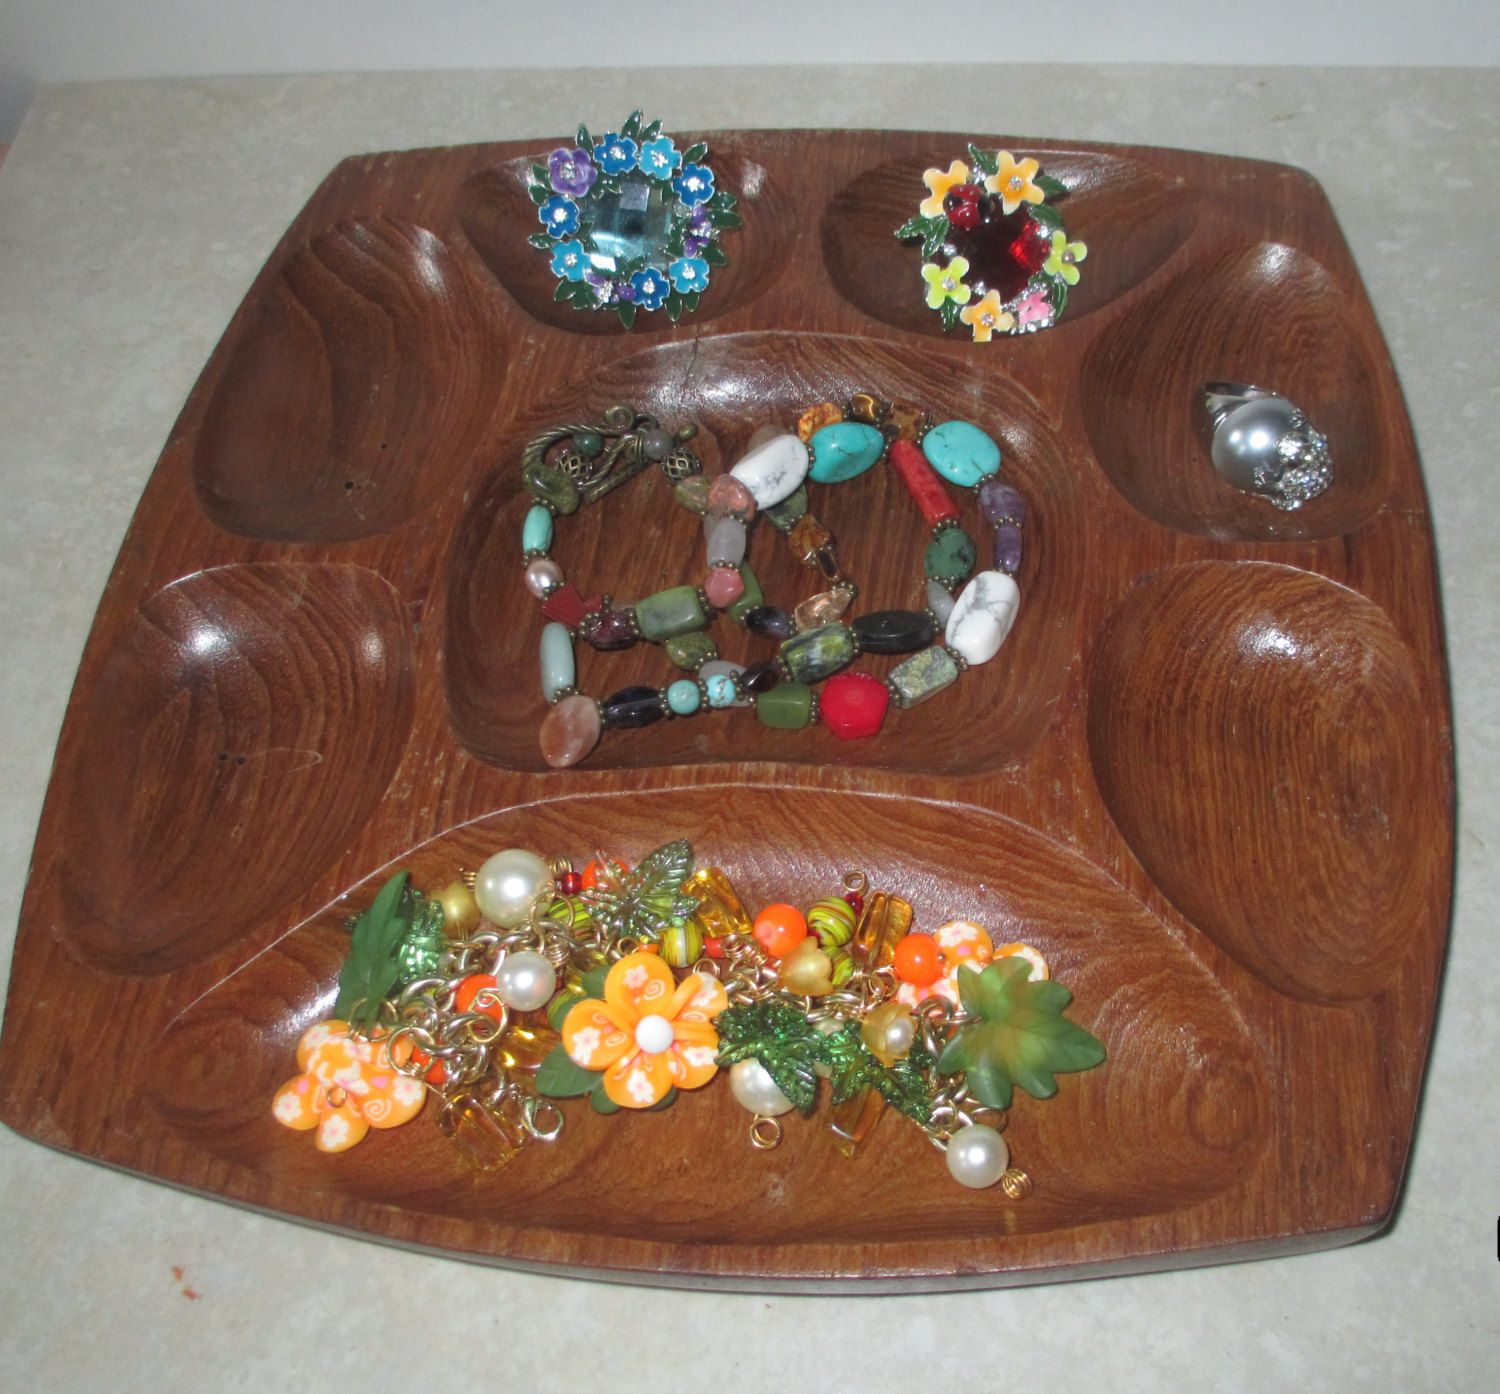 Monkey Pod Wooden Serving Tray Jewelry Organizer Tabletop Collect